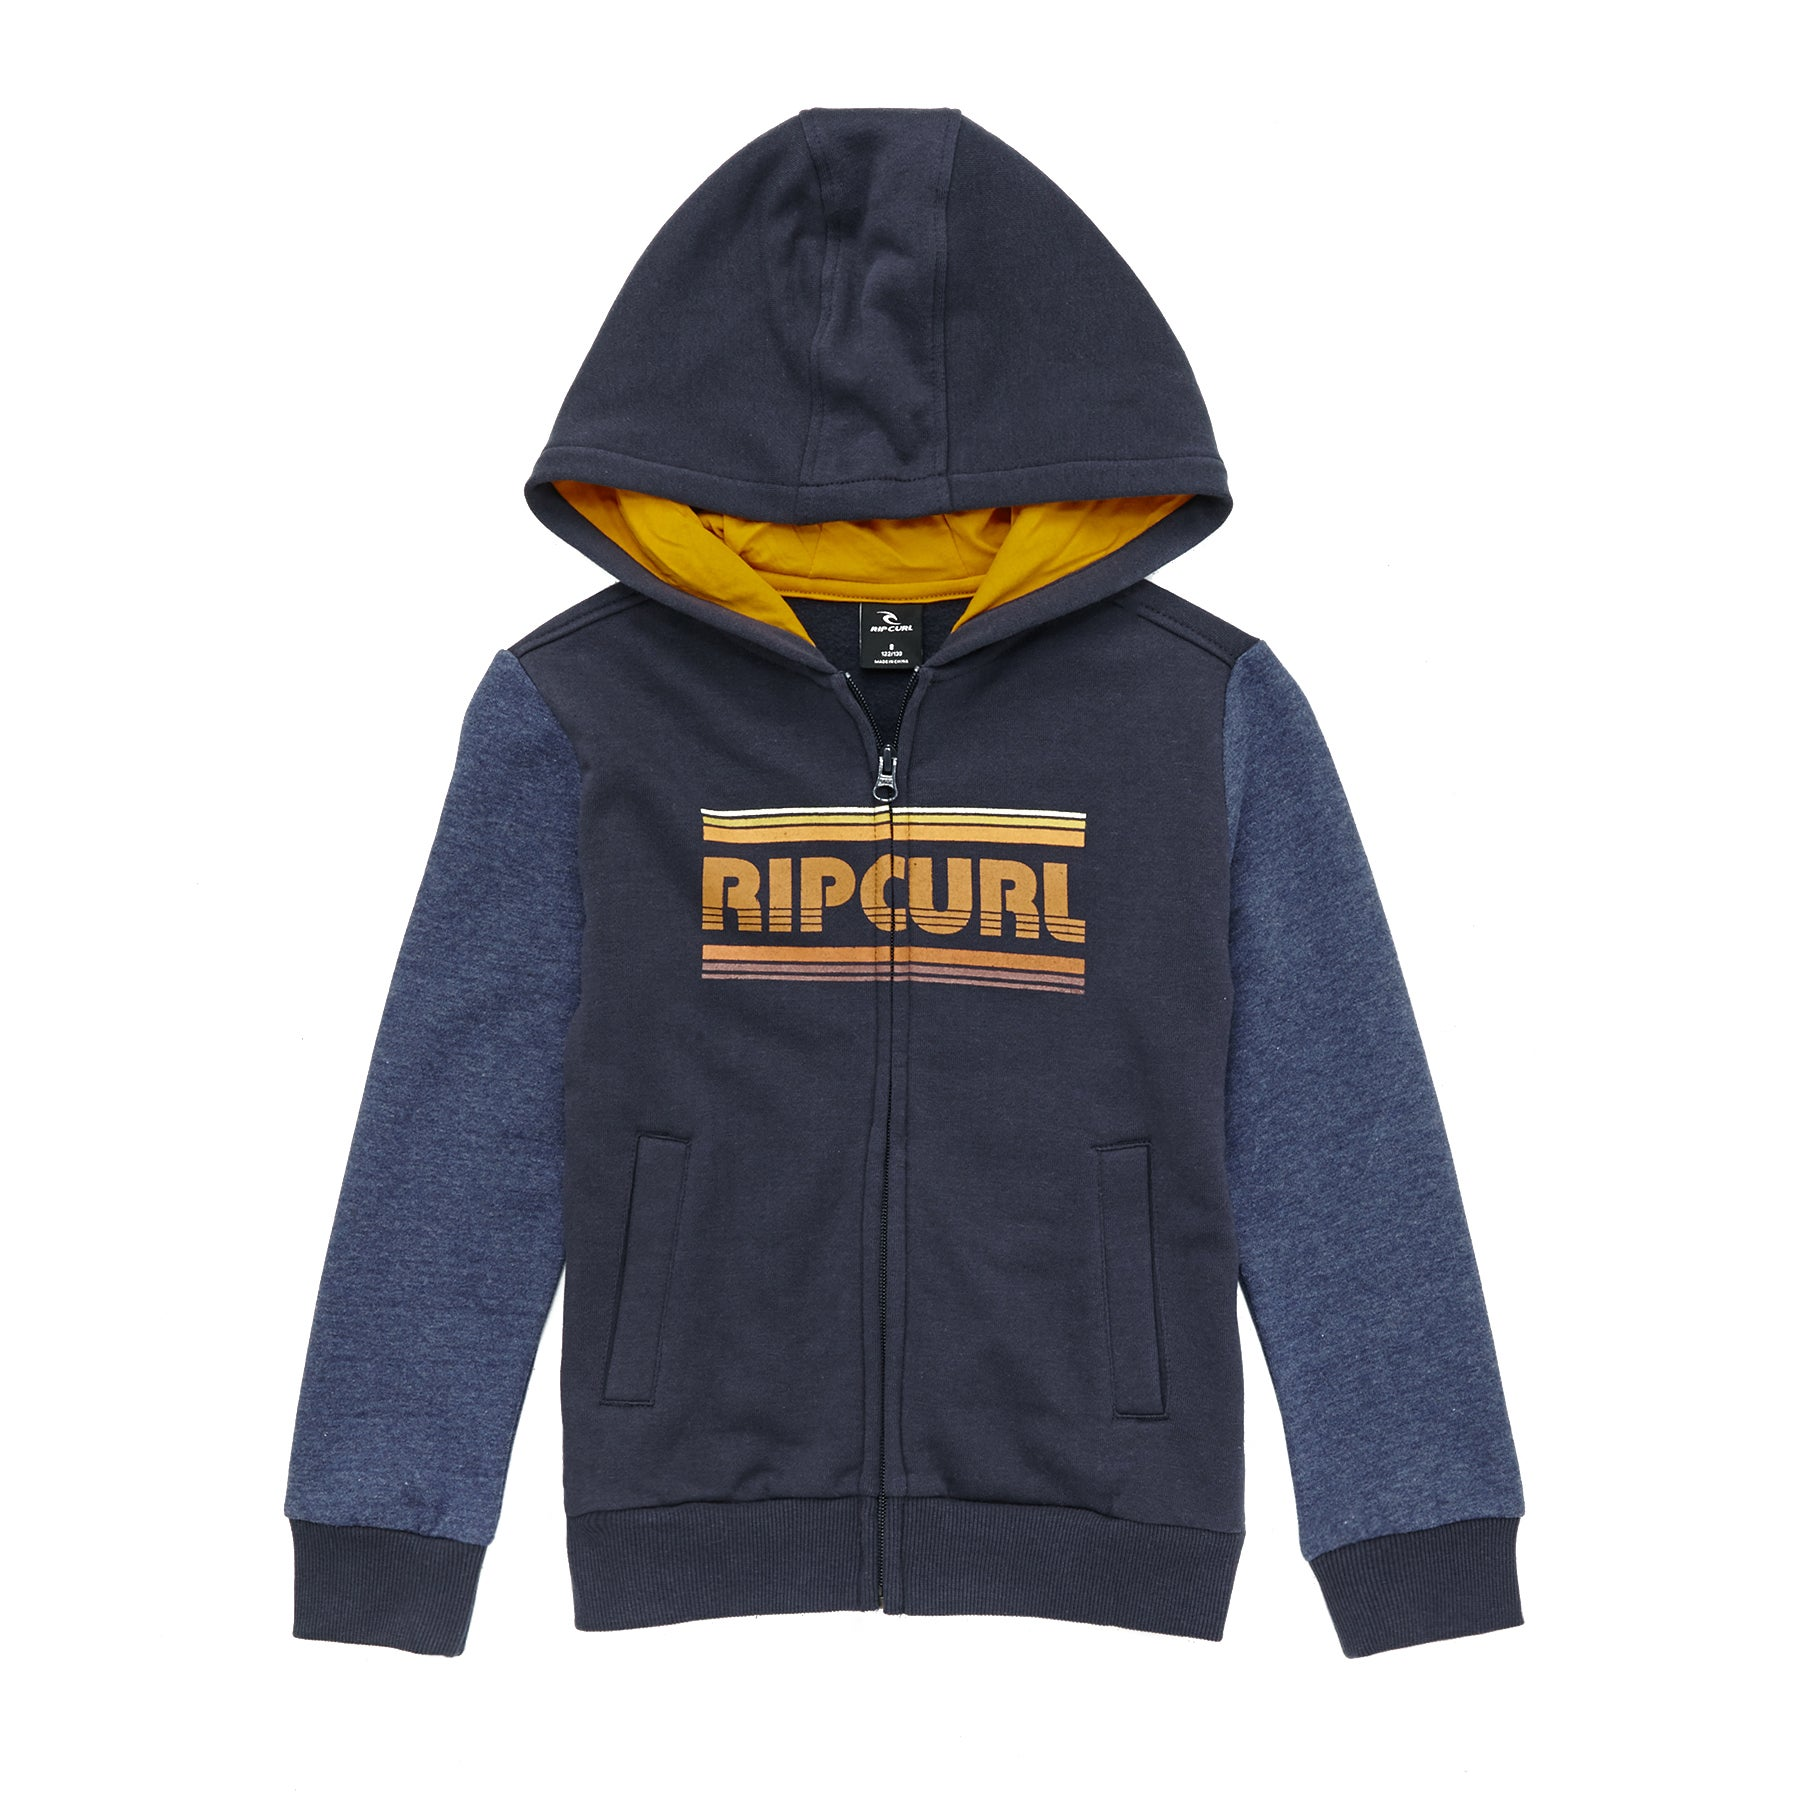 271f505ce Details about Rip Curl Big Mama Hz Boys Jacket Fleece - Mood Indigo All  Sizes